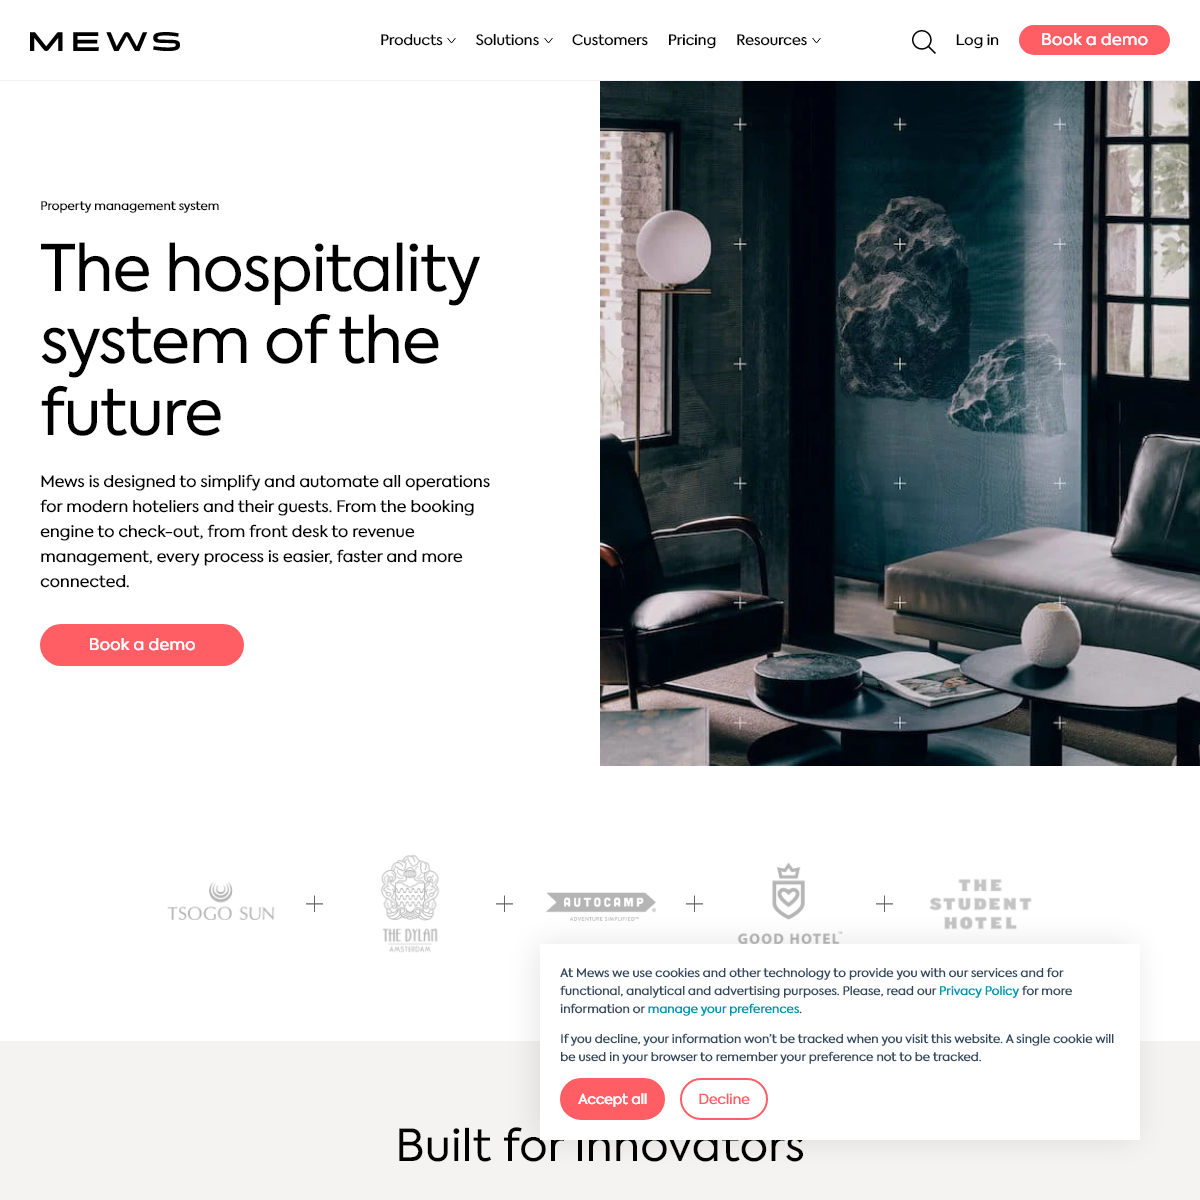 Mews property management system - The hospitality system of the future